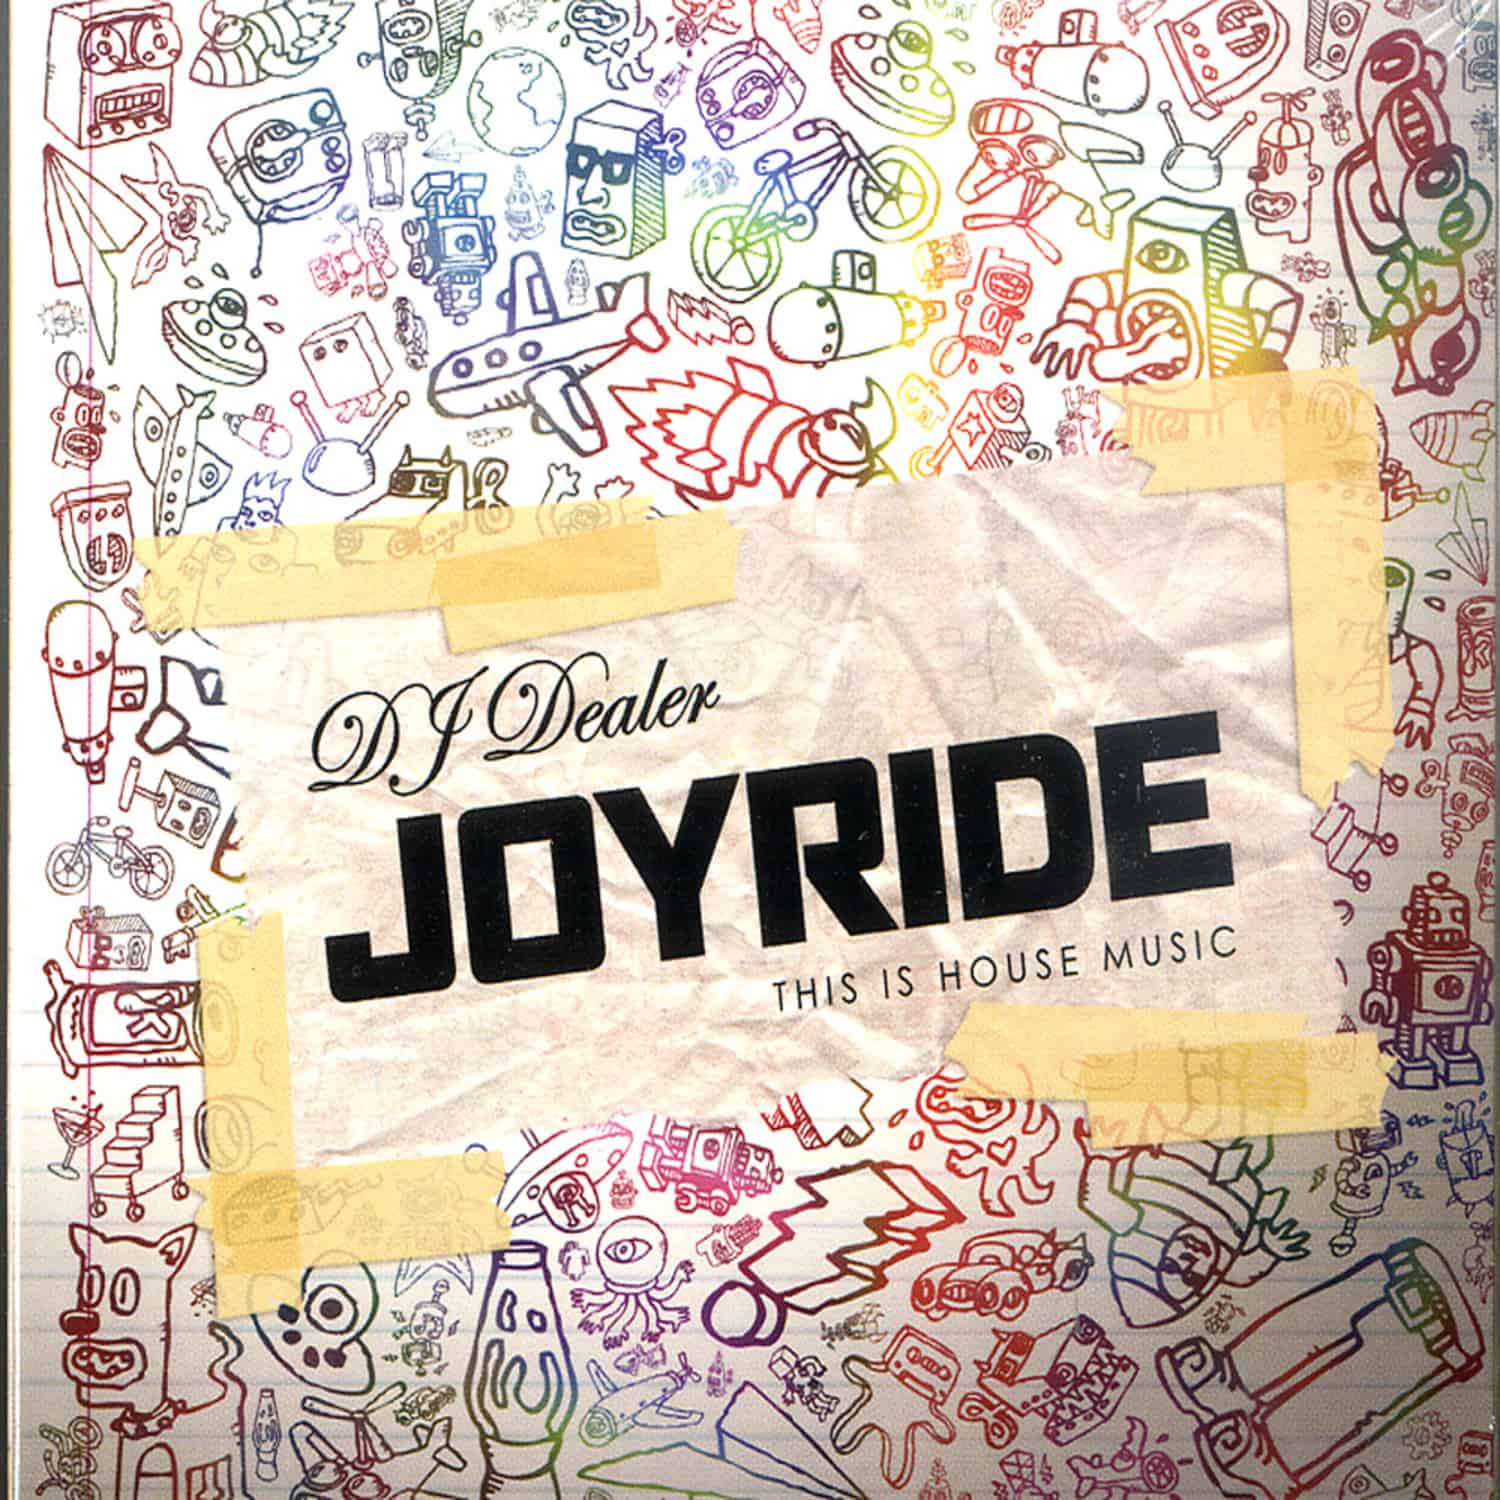 DJ Dealer - JOYRIDE - THIS IS HOUSE MUSIC